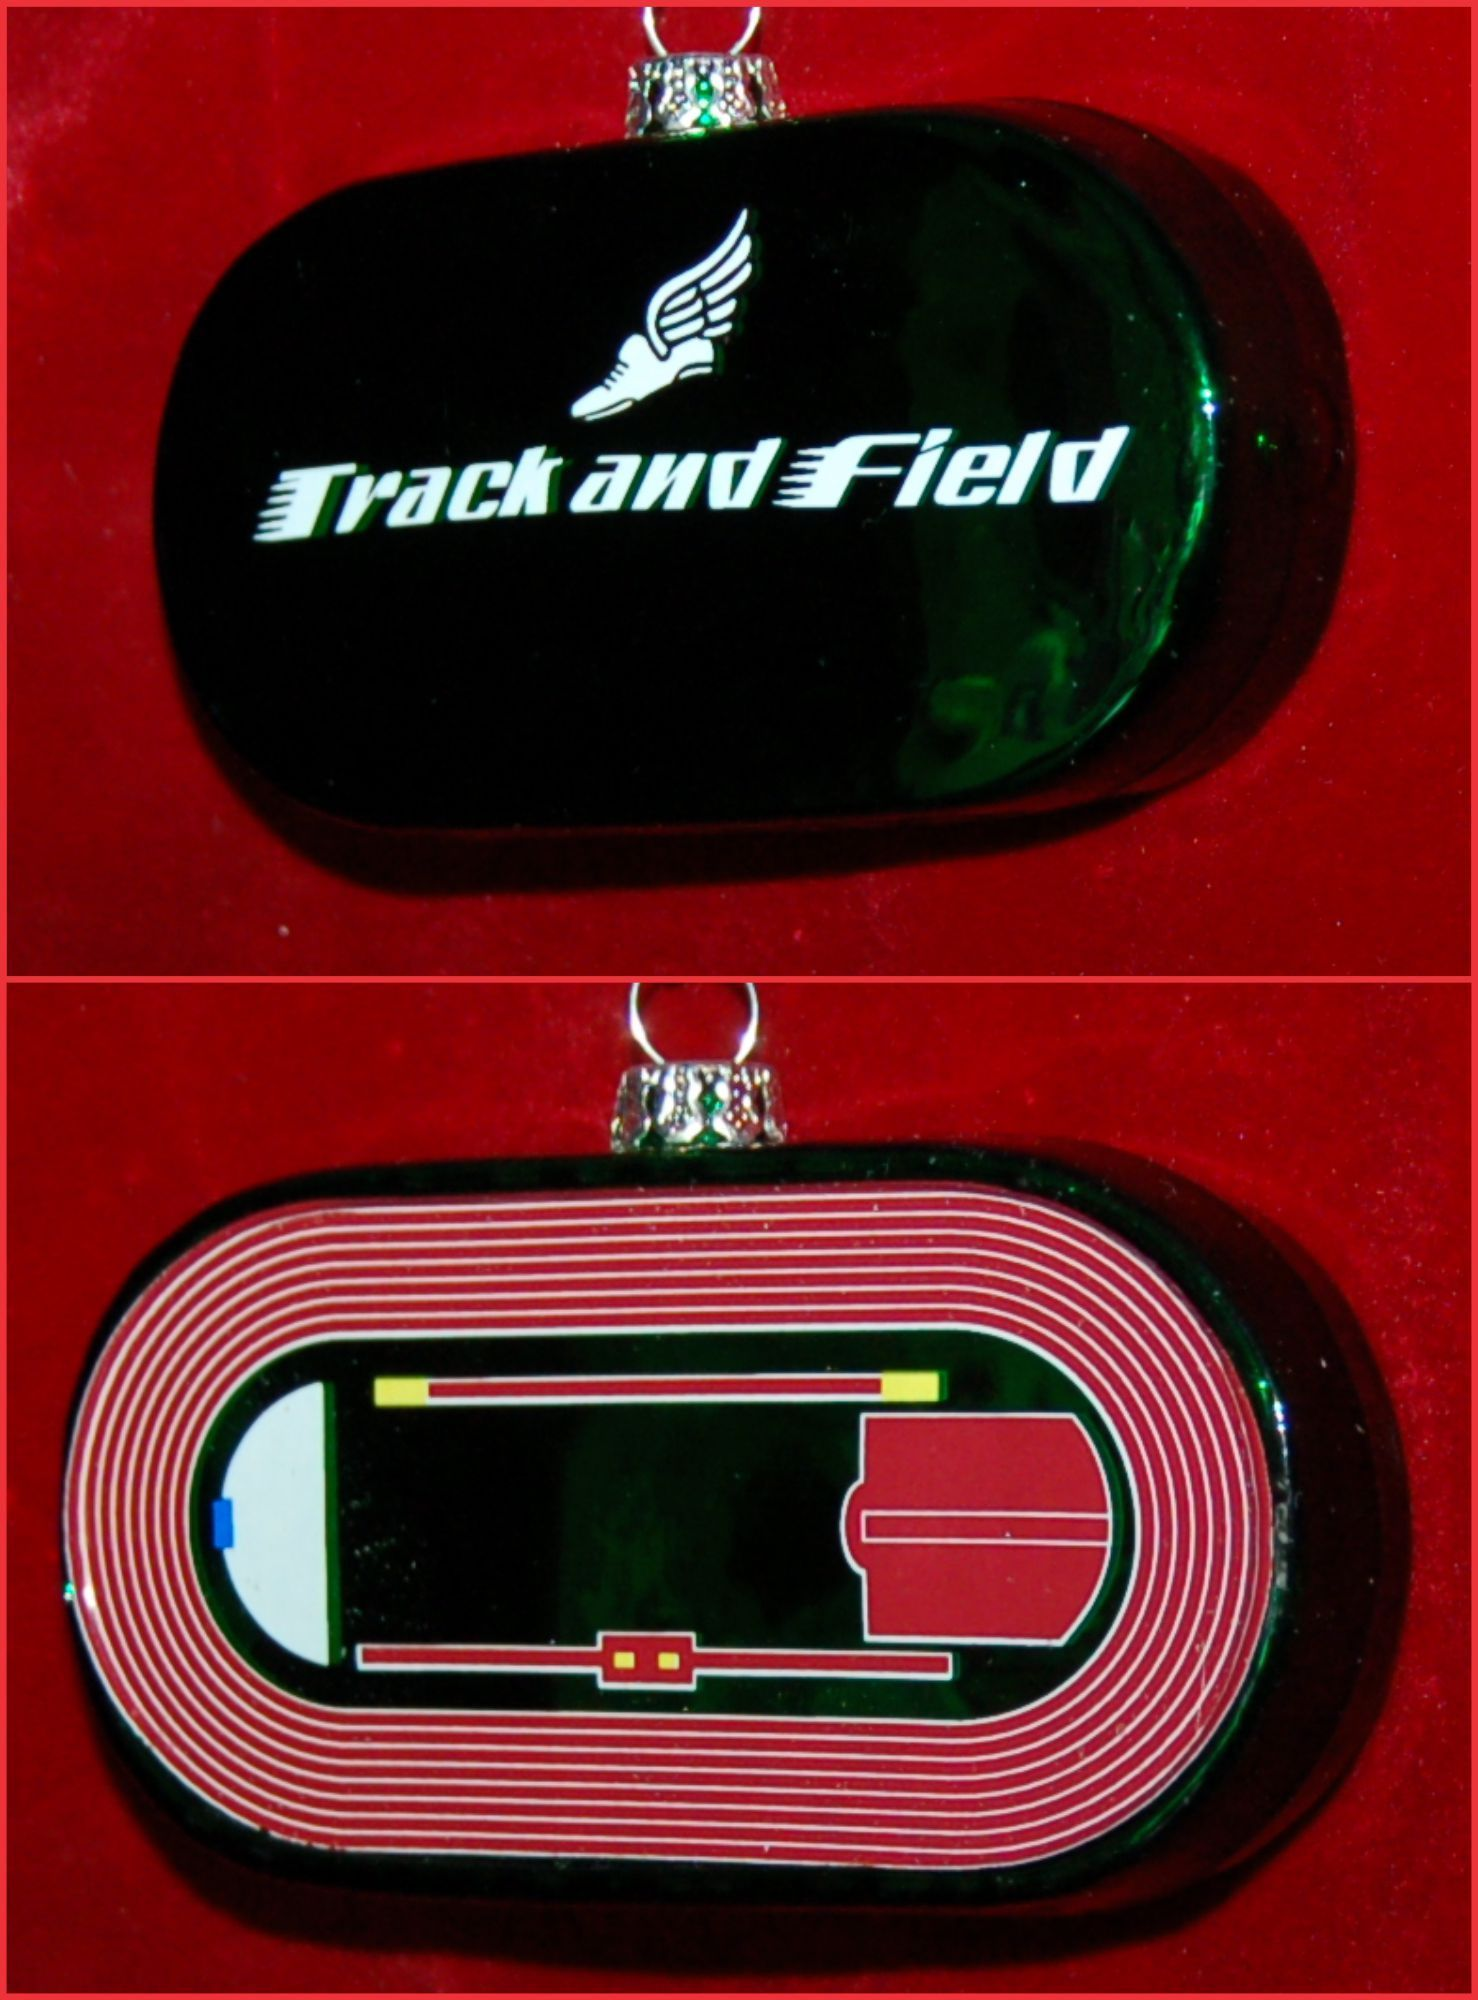 Track and Field Arena of Champions Christmas Ornament Personalized by Russell Rhodes